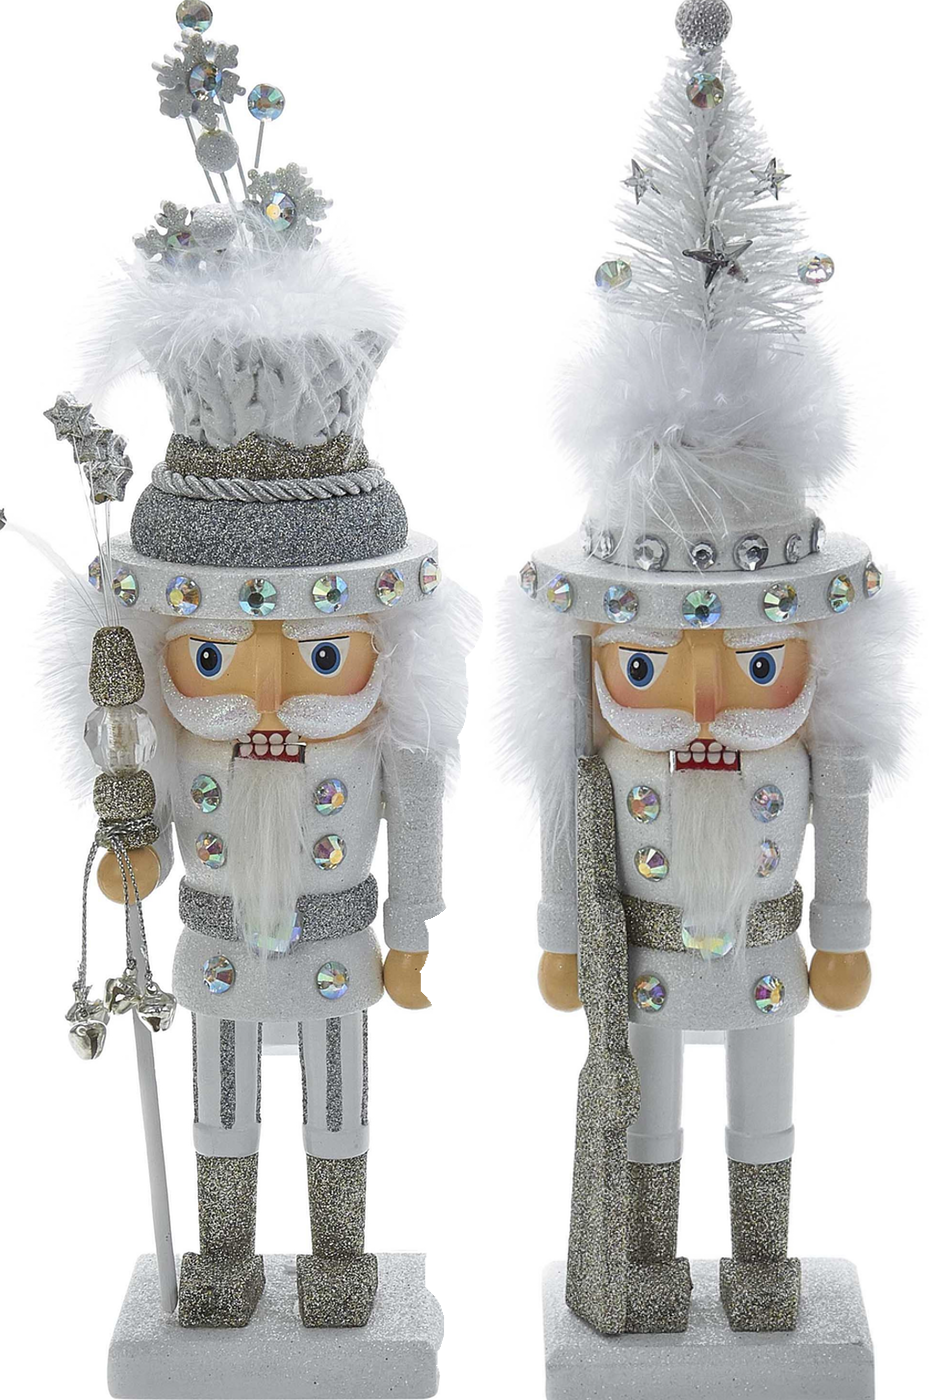 Wayfair 2 Piece Tree and Snowflake Nutcracker Set by Kurt Adler